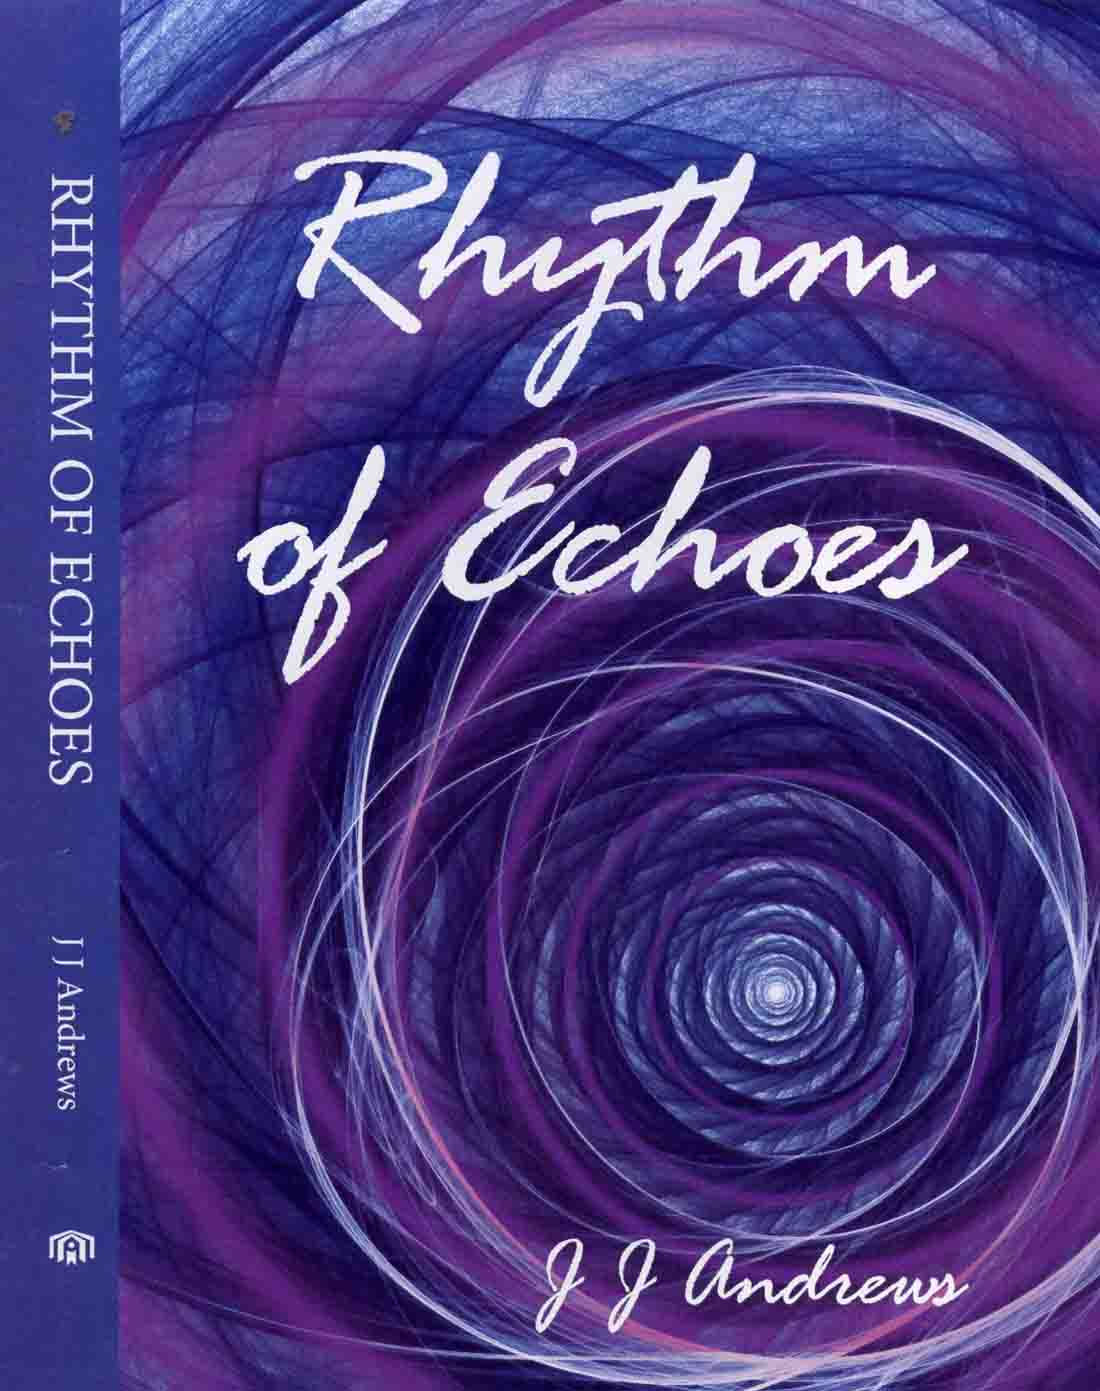 Rhythm of Echoes by J. J. Andrews